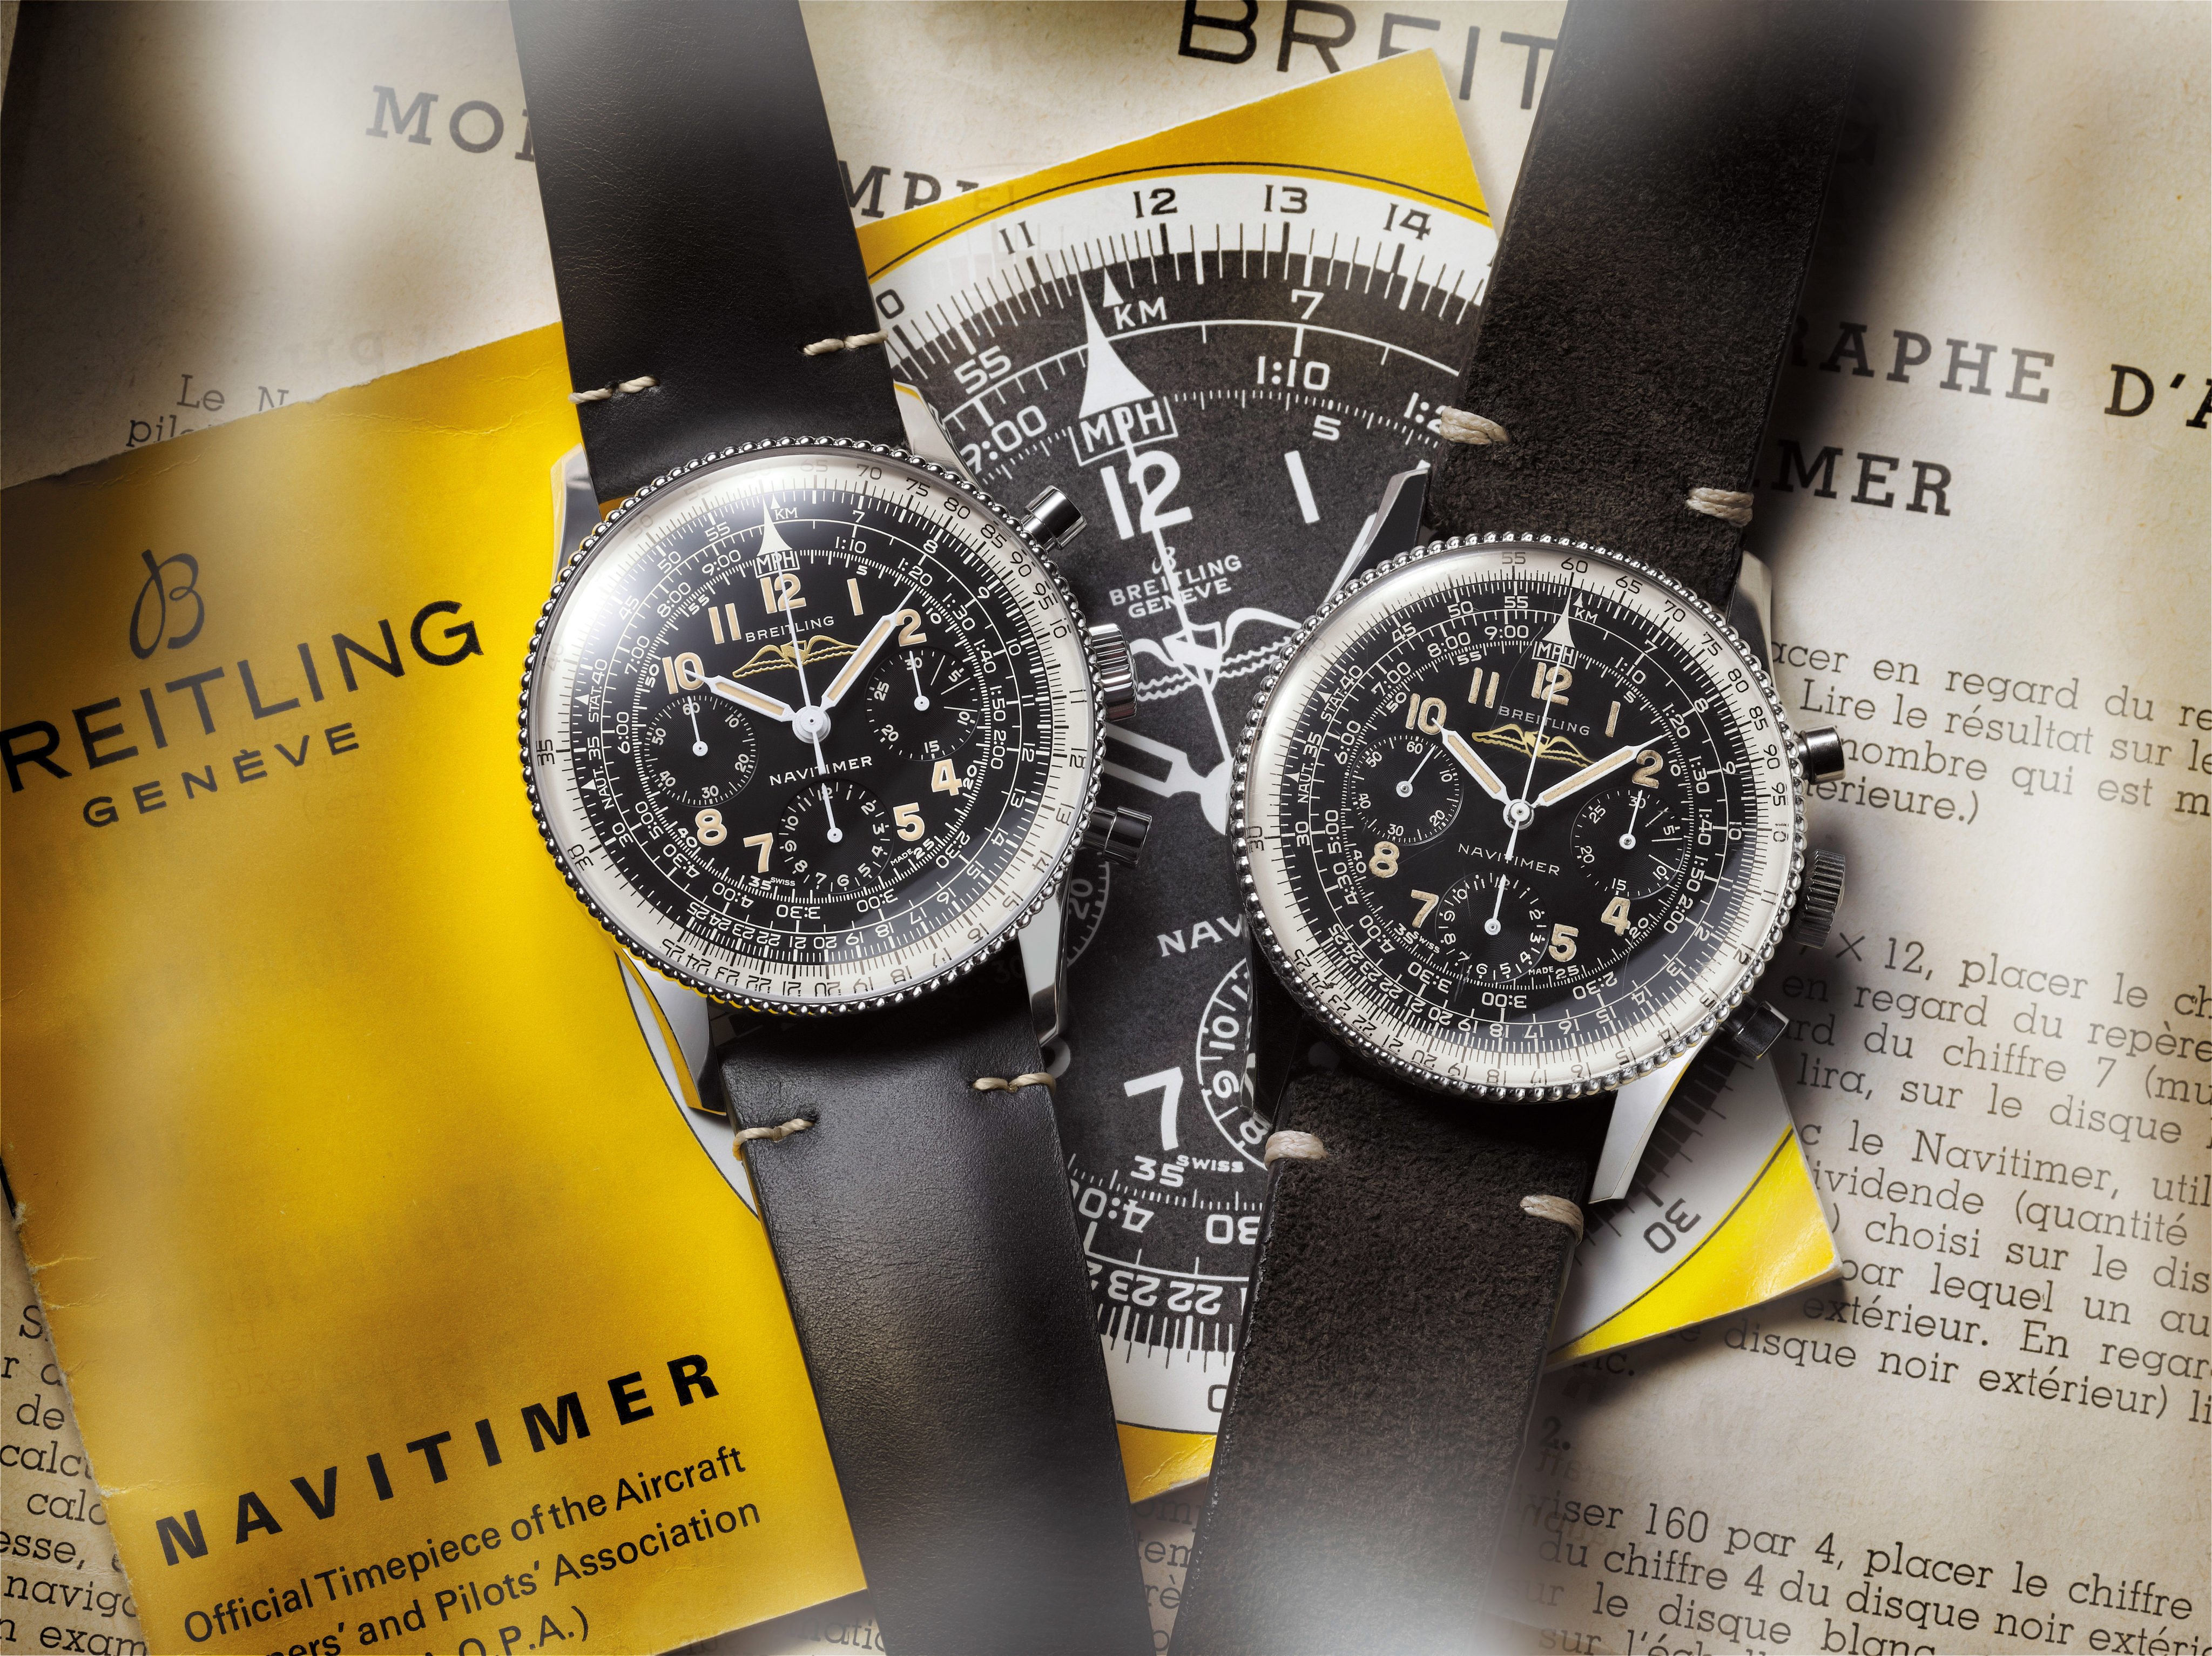 Navitimer Ref. 806 1959 Re-Edition and the historical Navitimer Ref. 806 from 1959 (left to right)